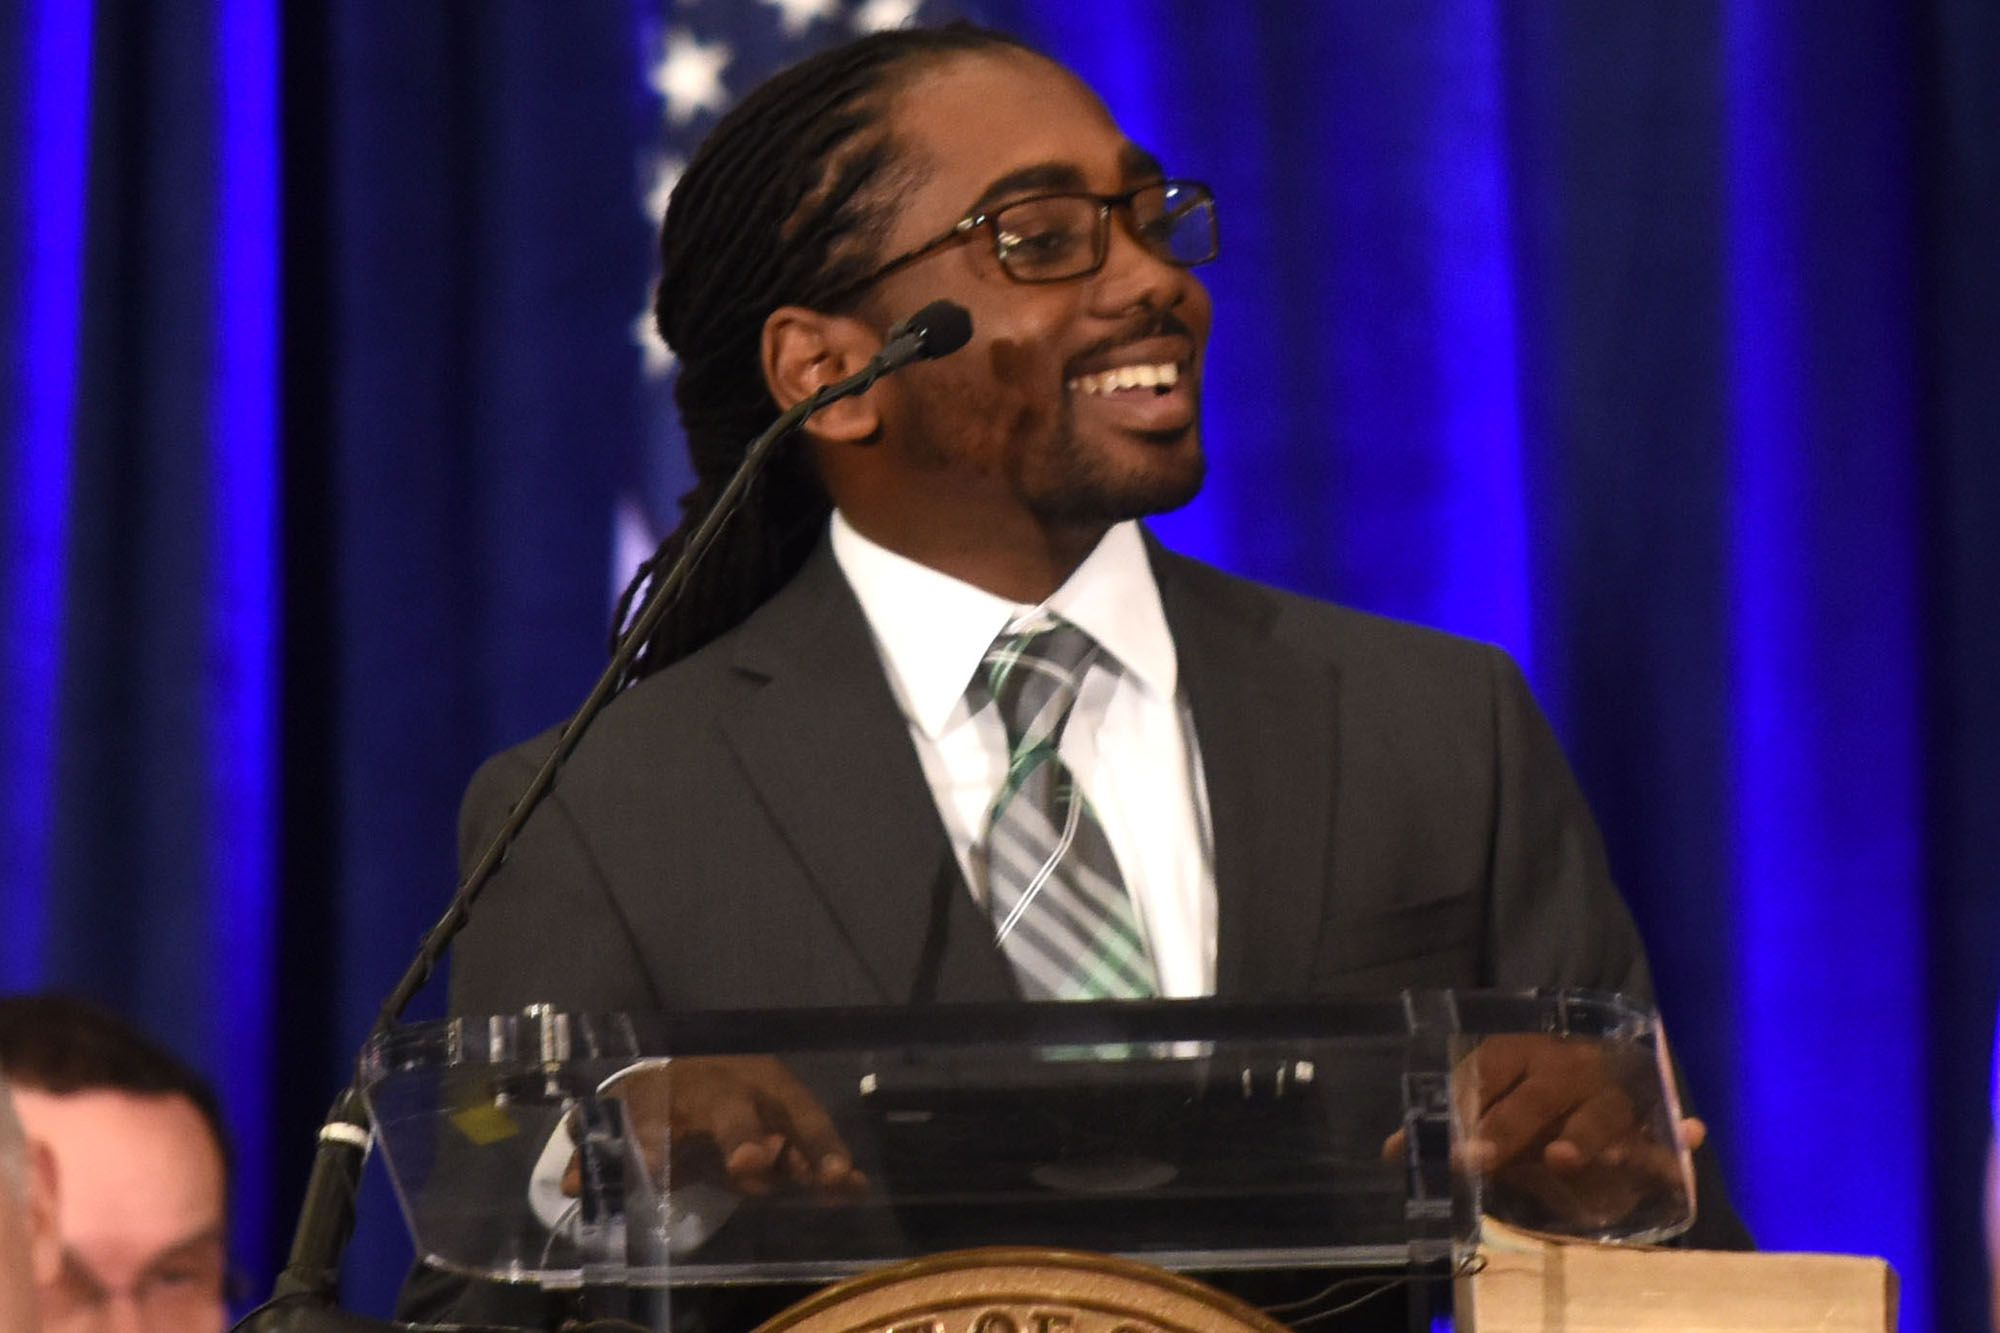 WATCH Democrat Trayon White Sr Also Claims Jewish Bankers Control The Government